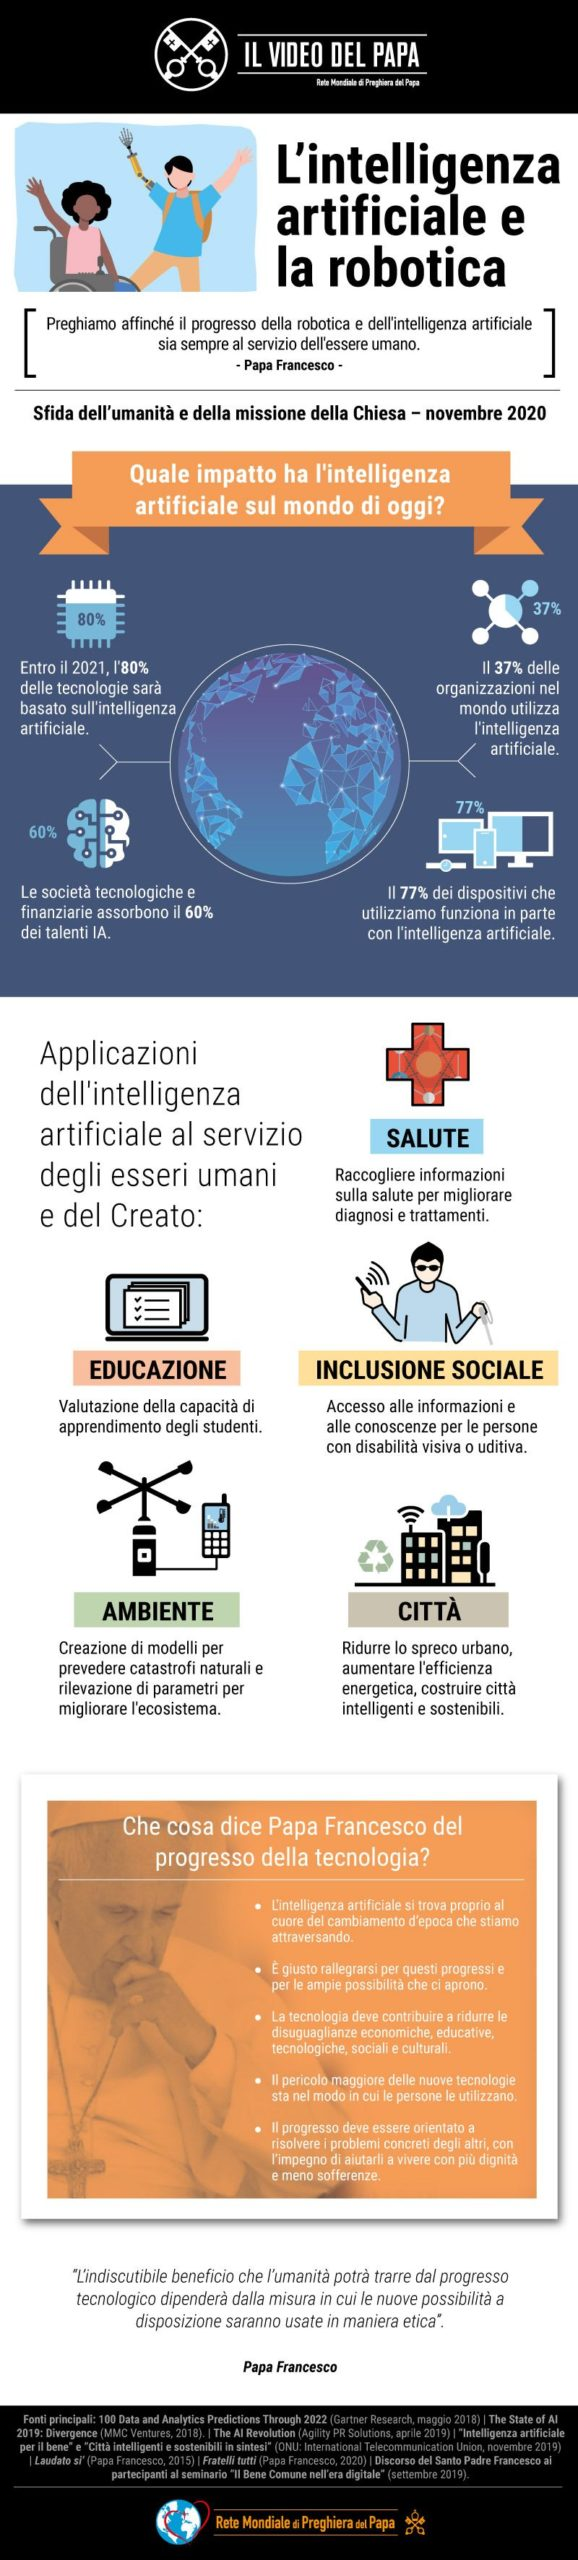 Infografia - TPV 11 2020 IT - Il Video del Papa - L'intelligenza artificiale